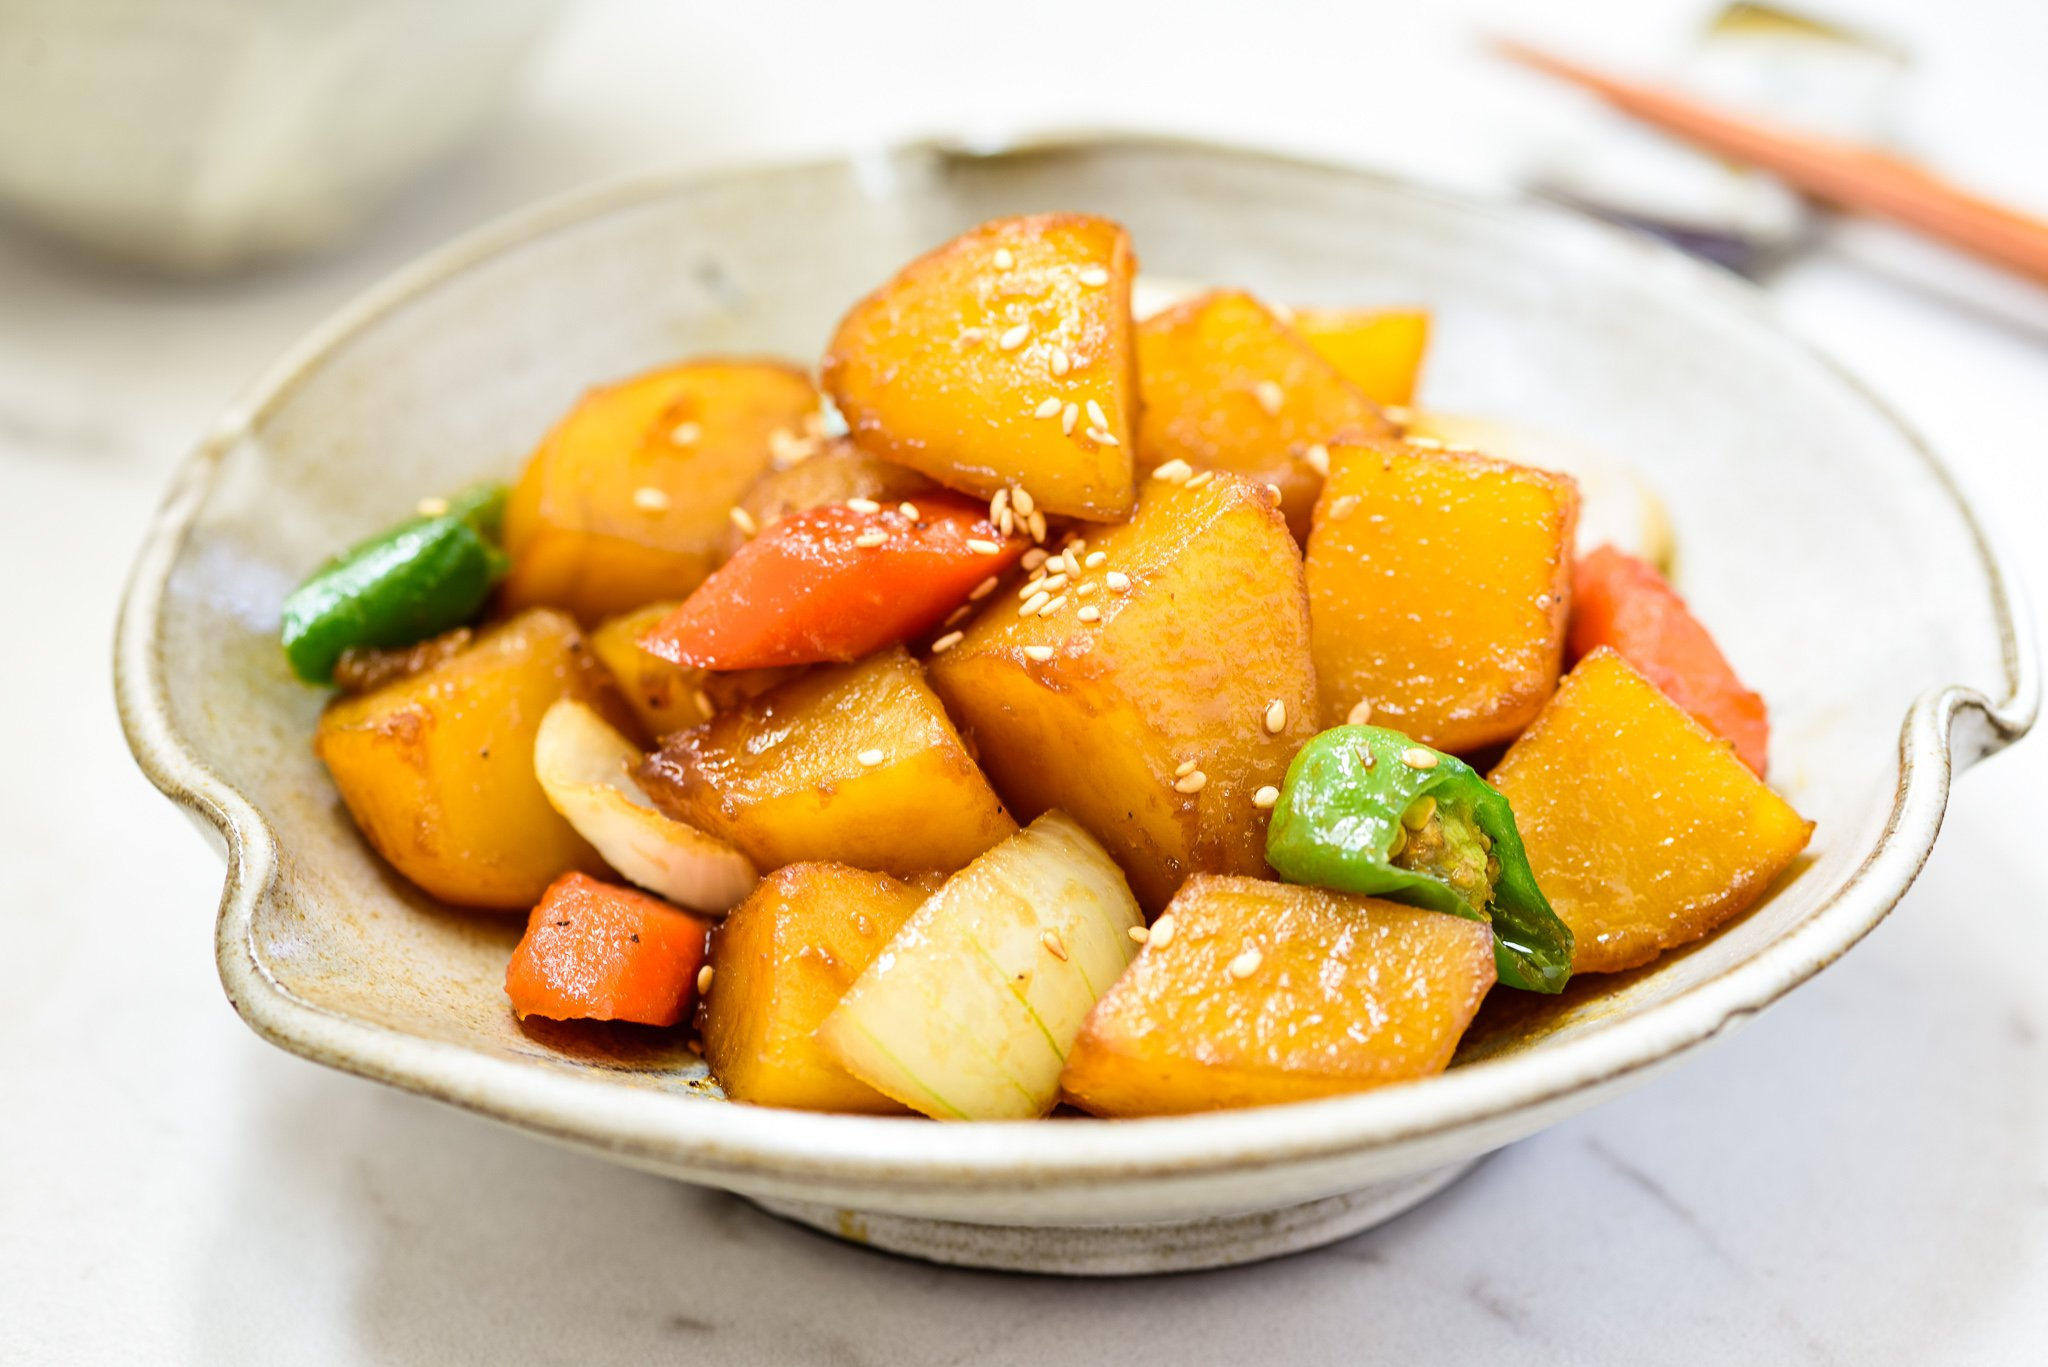 Korean soy braised potatoes